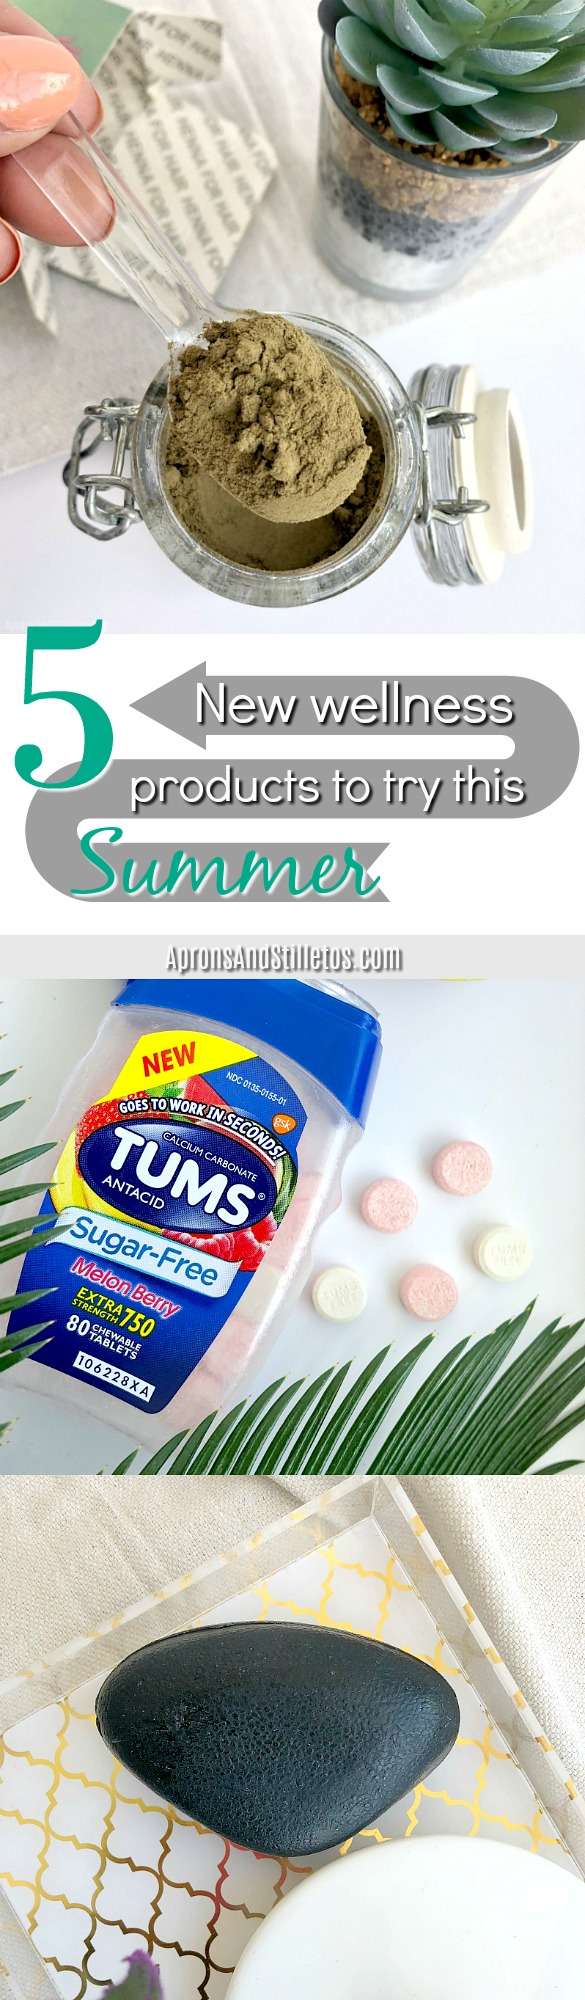 5 New Wellness Products to Try this Summer - ApronsAndStilletos.com